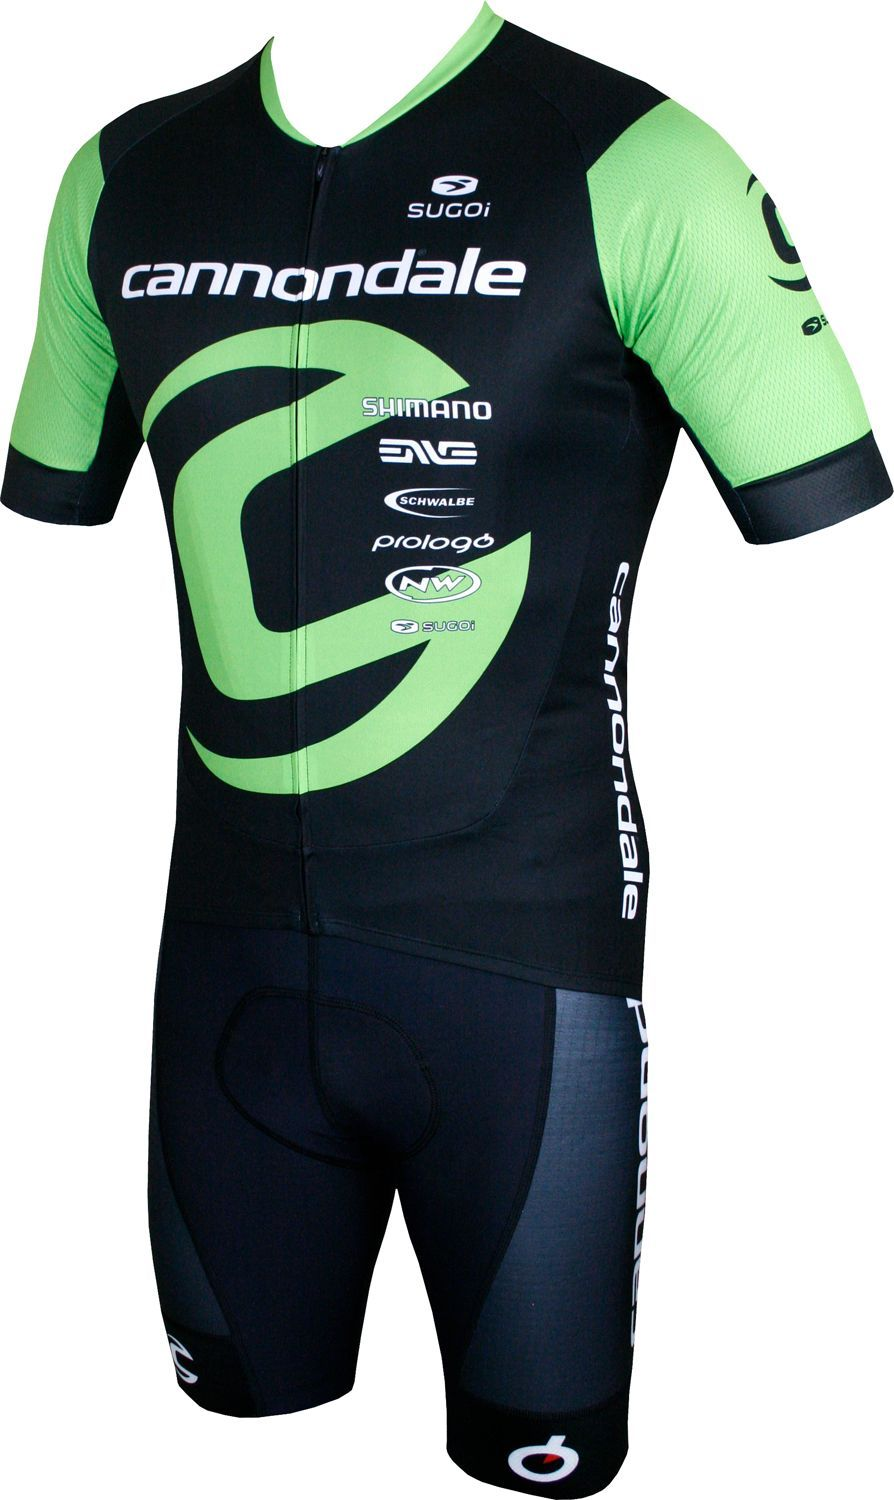 Cannondale FACTORY RACING 2018 cycling bib shorts - Sugoi professional cycling  team. Next 98f18465d